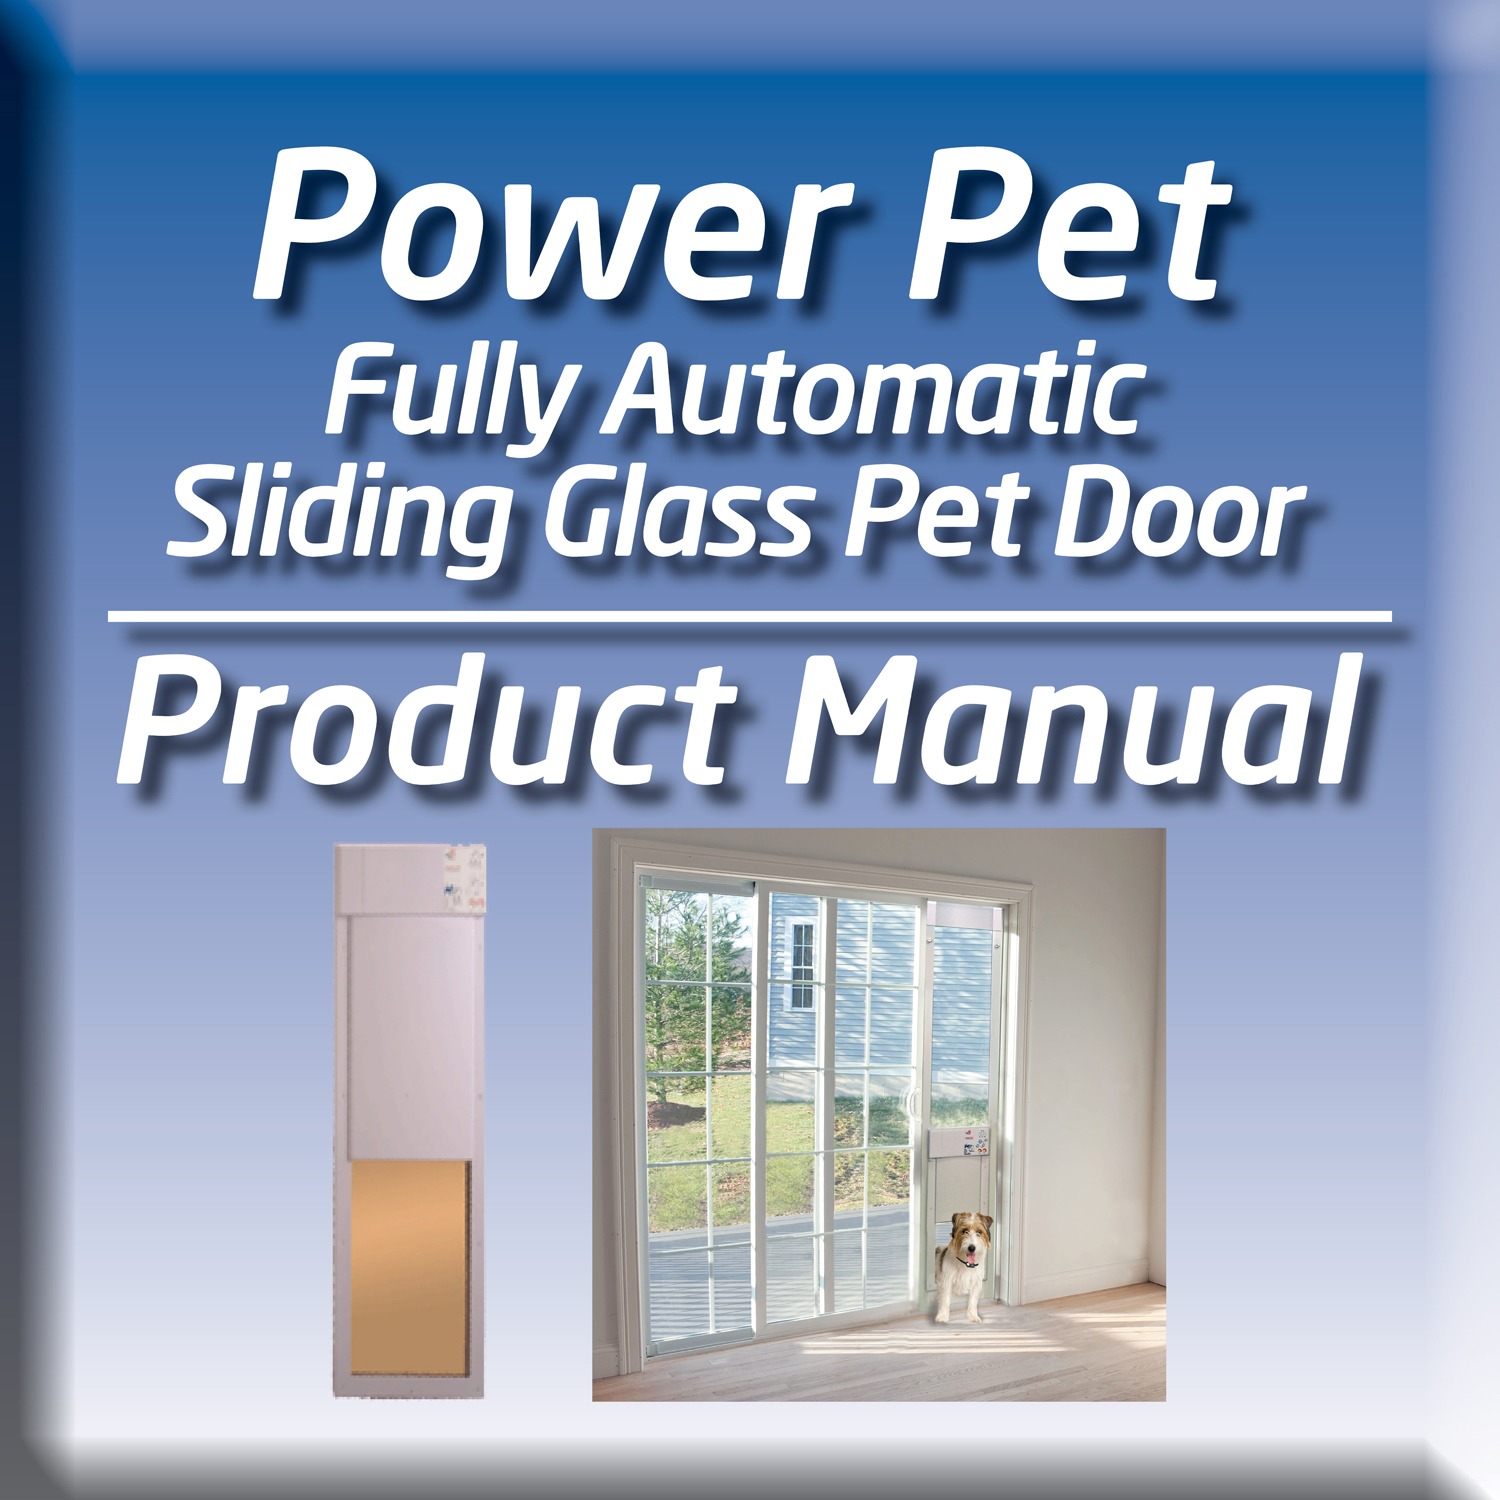 Our dog door training manual is here to help you